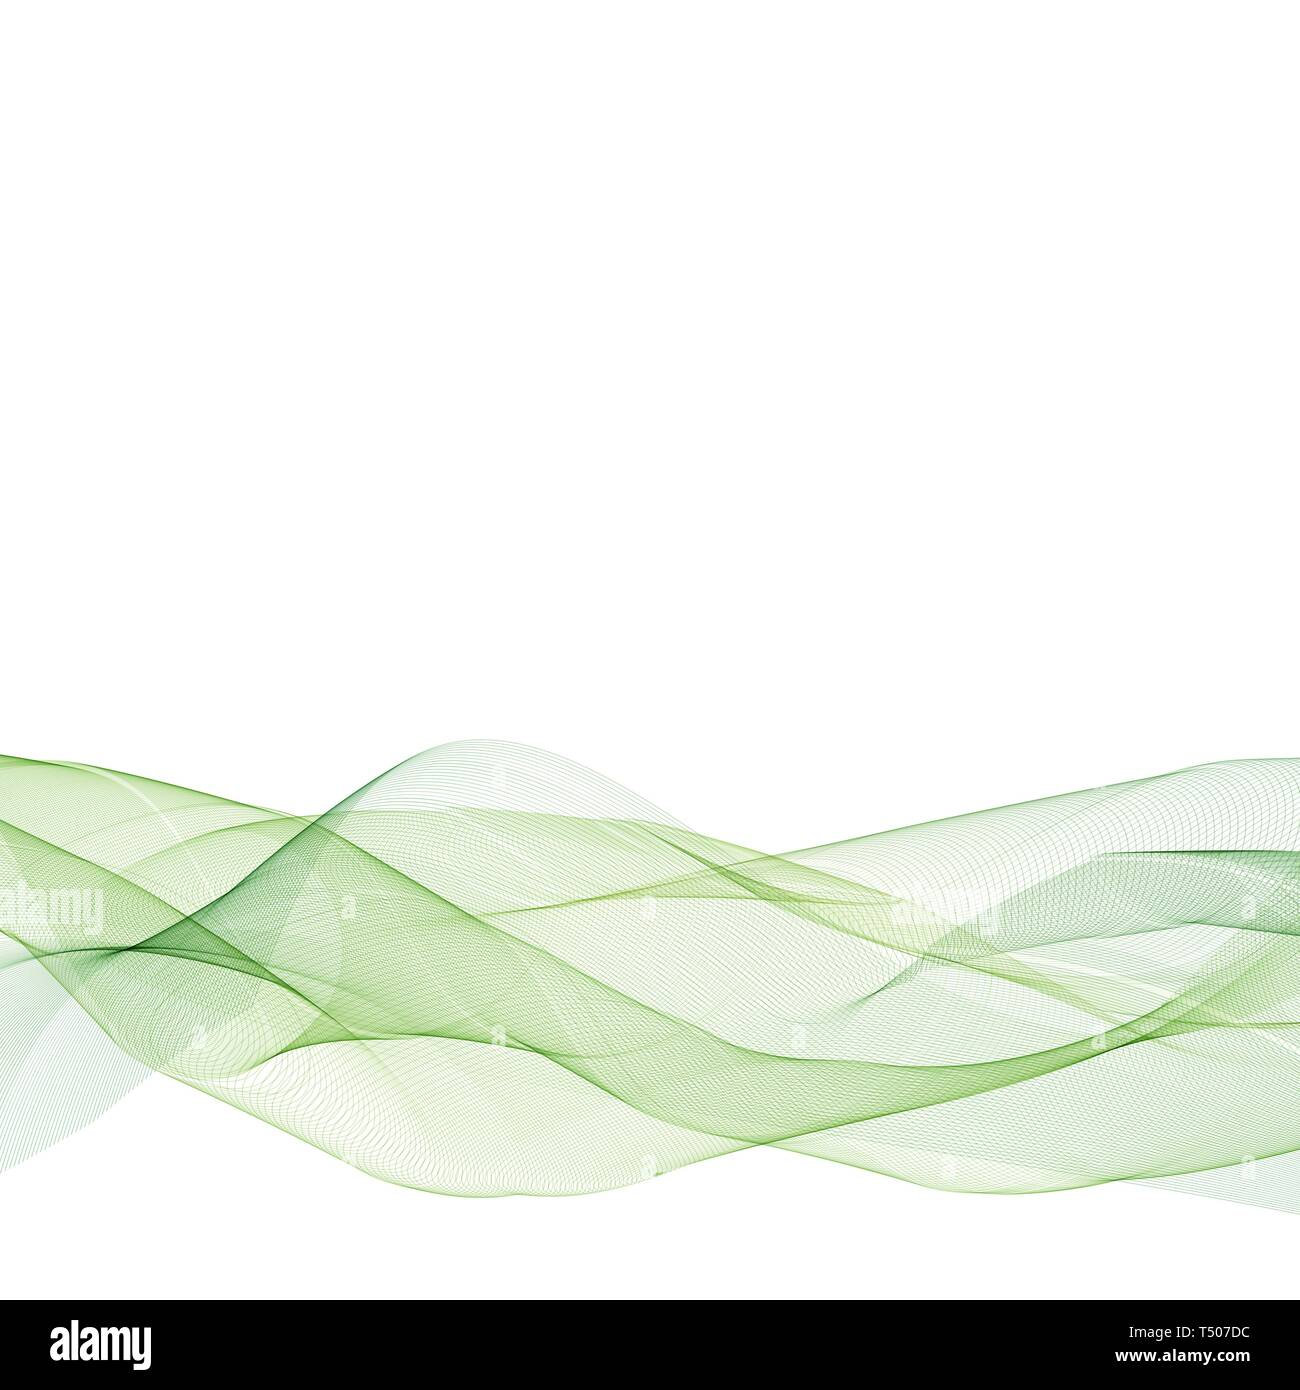 Abstract Green Wavy Lines Colorful Vector Background Green